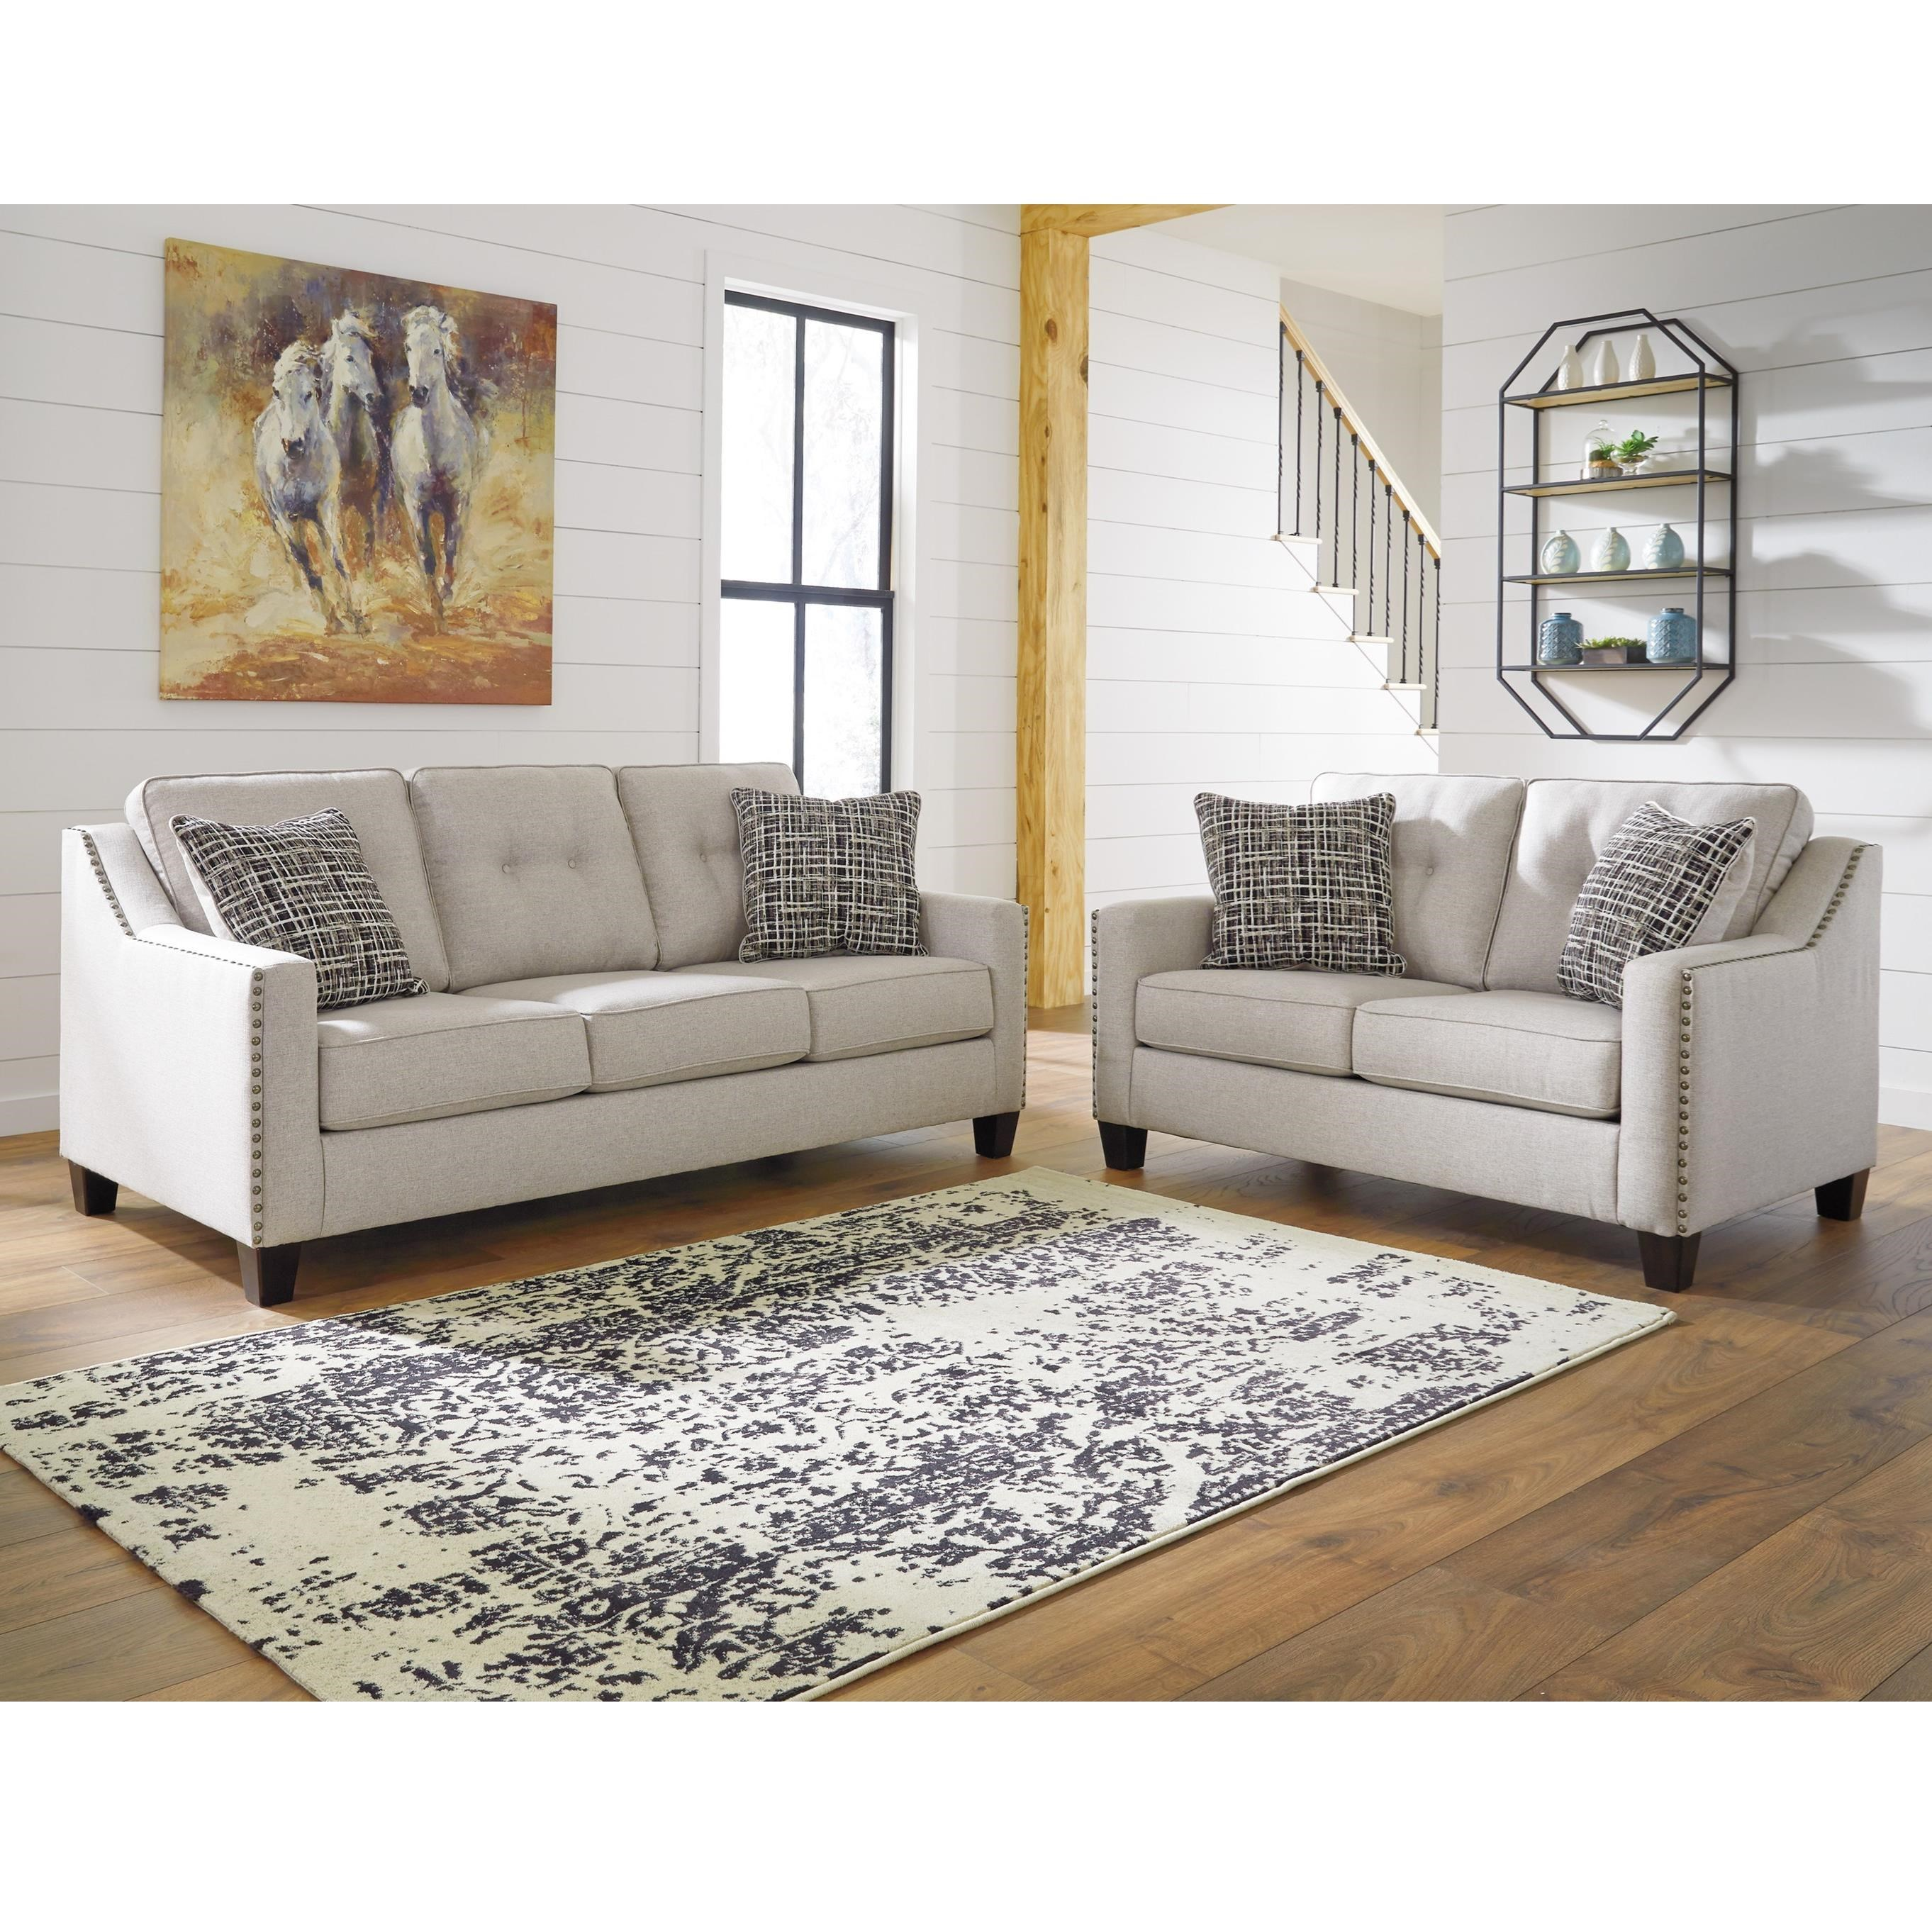 benchcraft chaise item sofa sectional number products sleeper left cupboard and furniture nuvella with kirwin